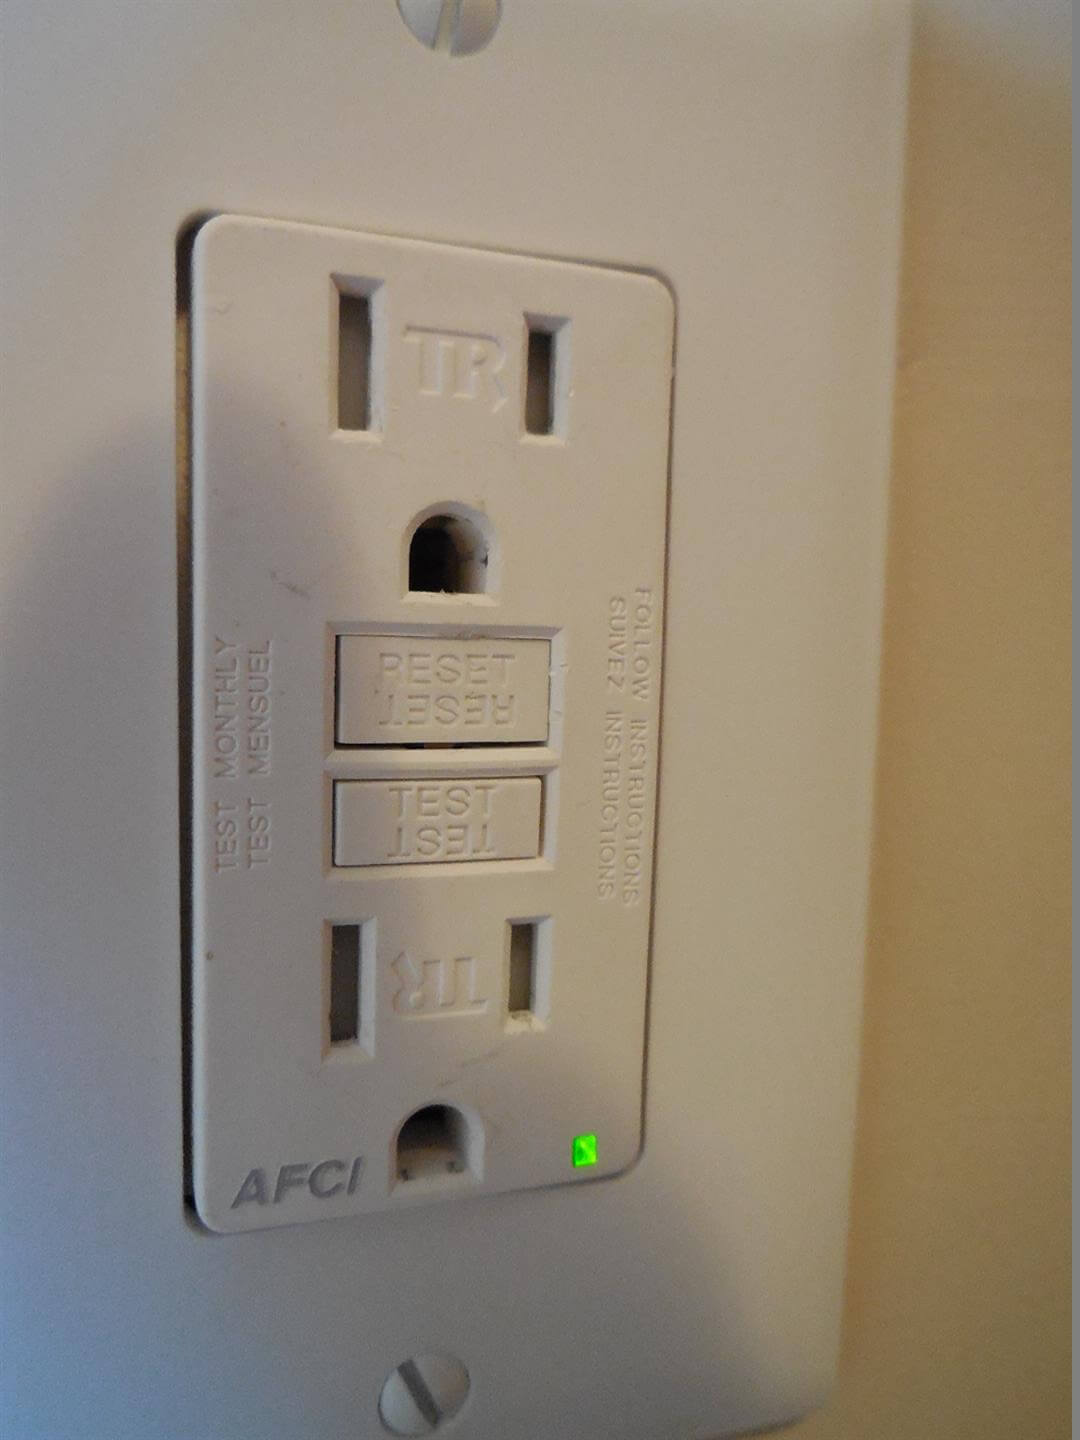 new electrical safety requirement: afci protection for replacement outlets